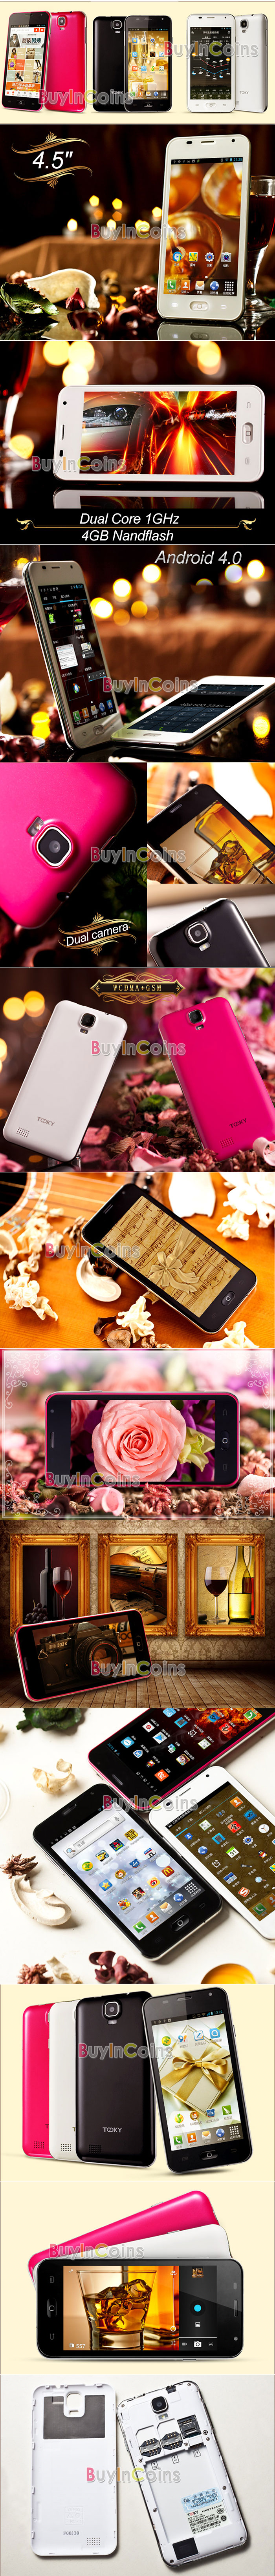 TOOKY T86 - смартфон, Android 4.0, MT6577 1GHz, 4.5